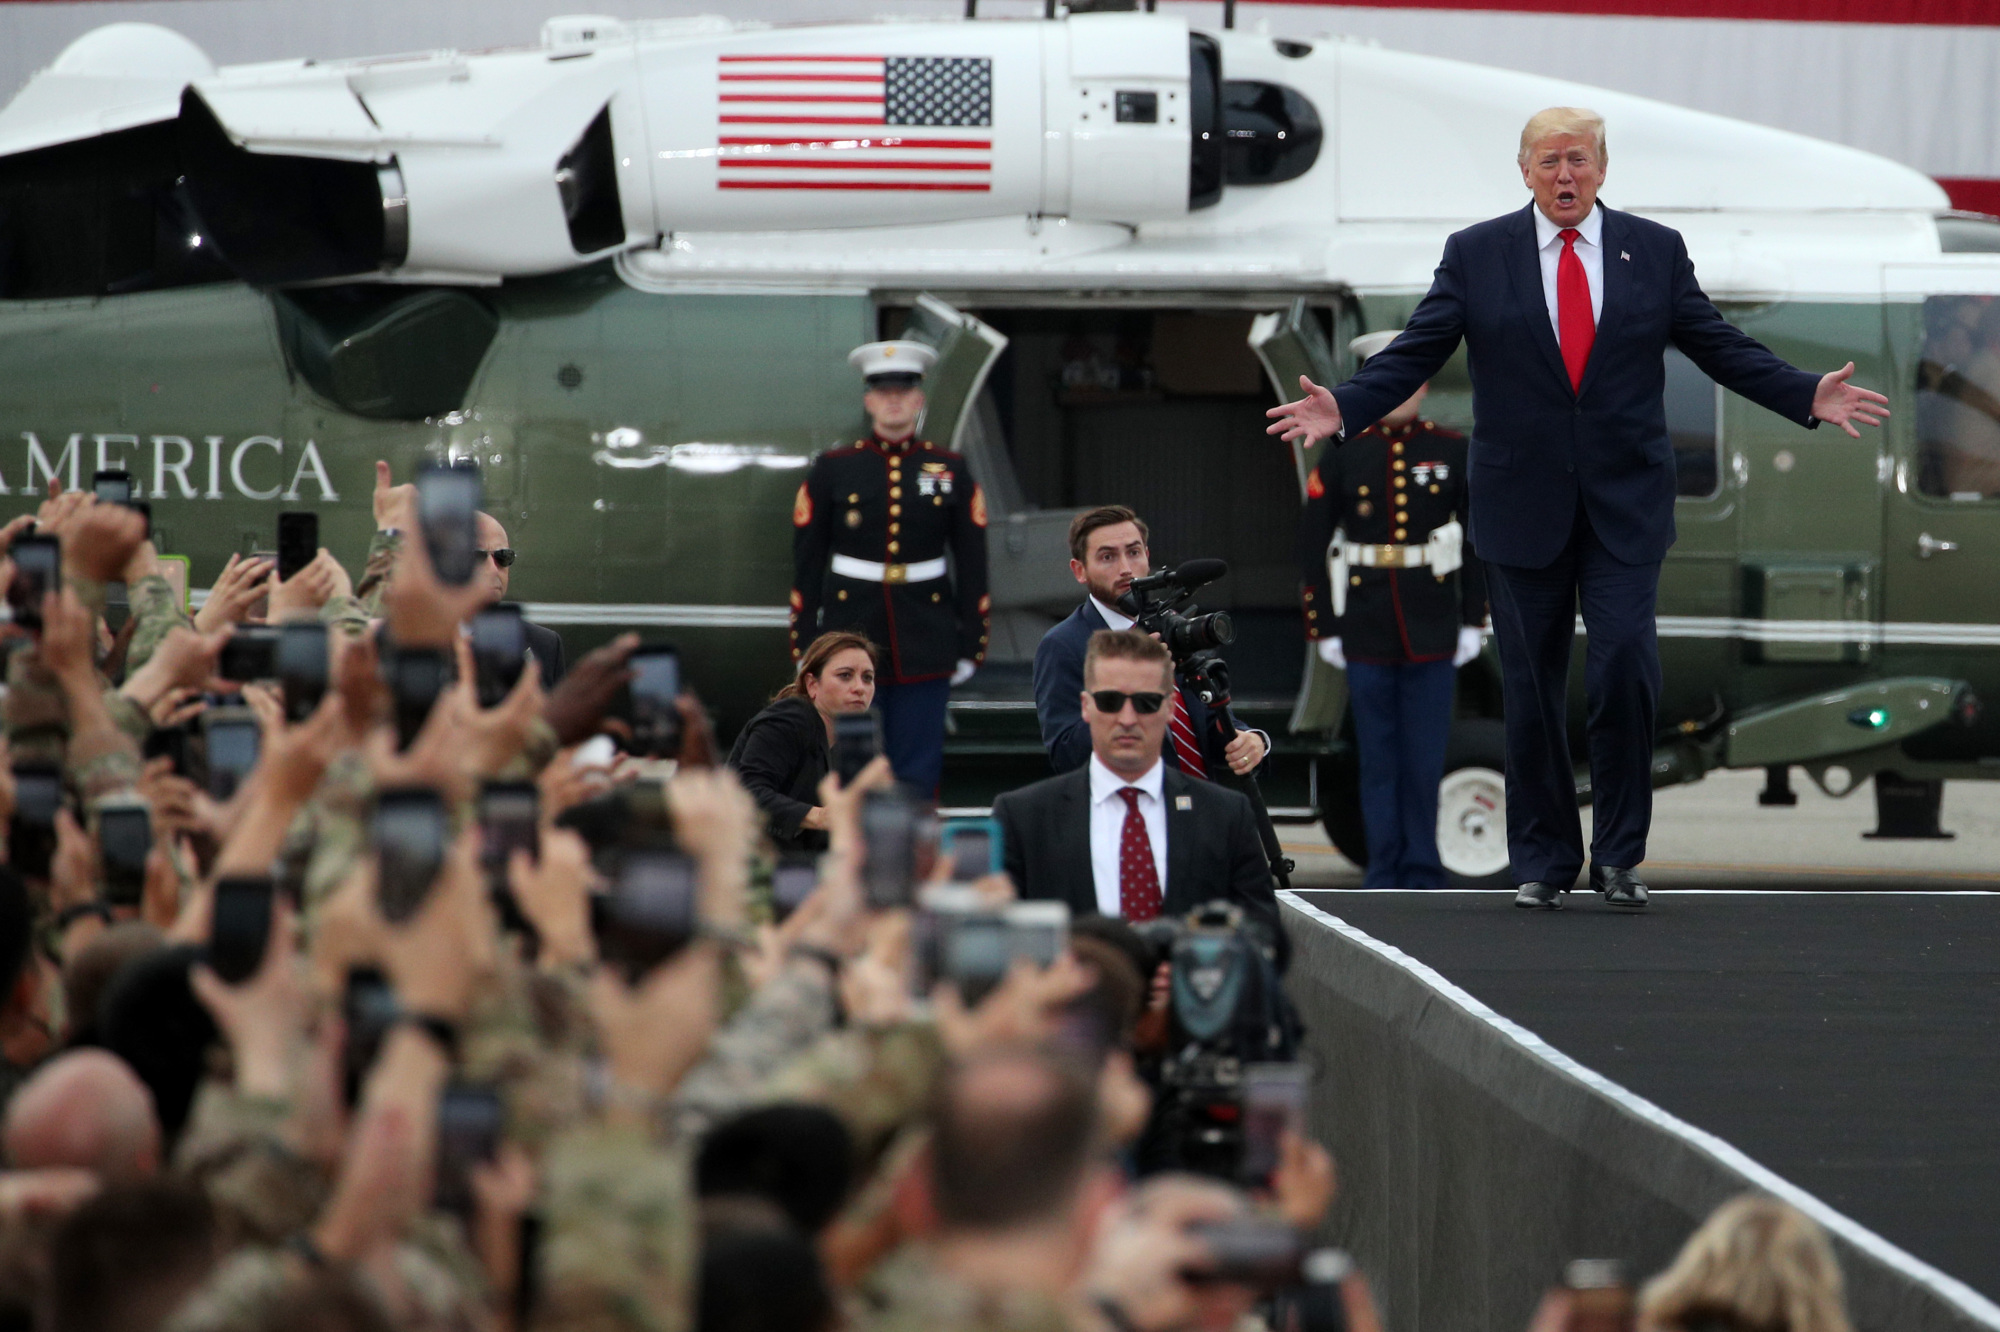 U.S. President Donald Trump arrives to address American military personnel at Osan Air Base in Pyeongtaek, South Korea, on June 30. | BLOOMBERG